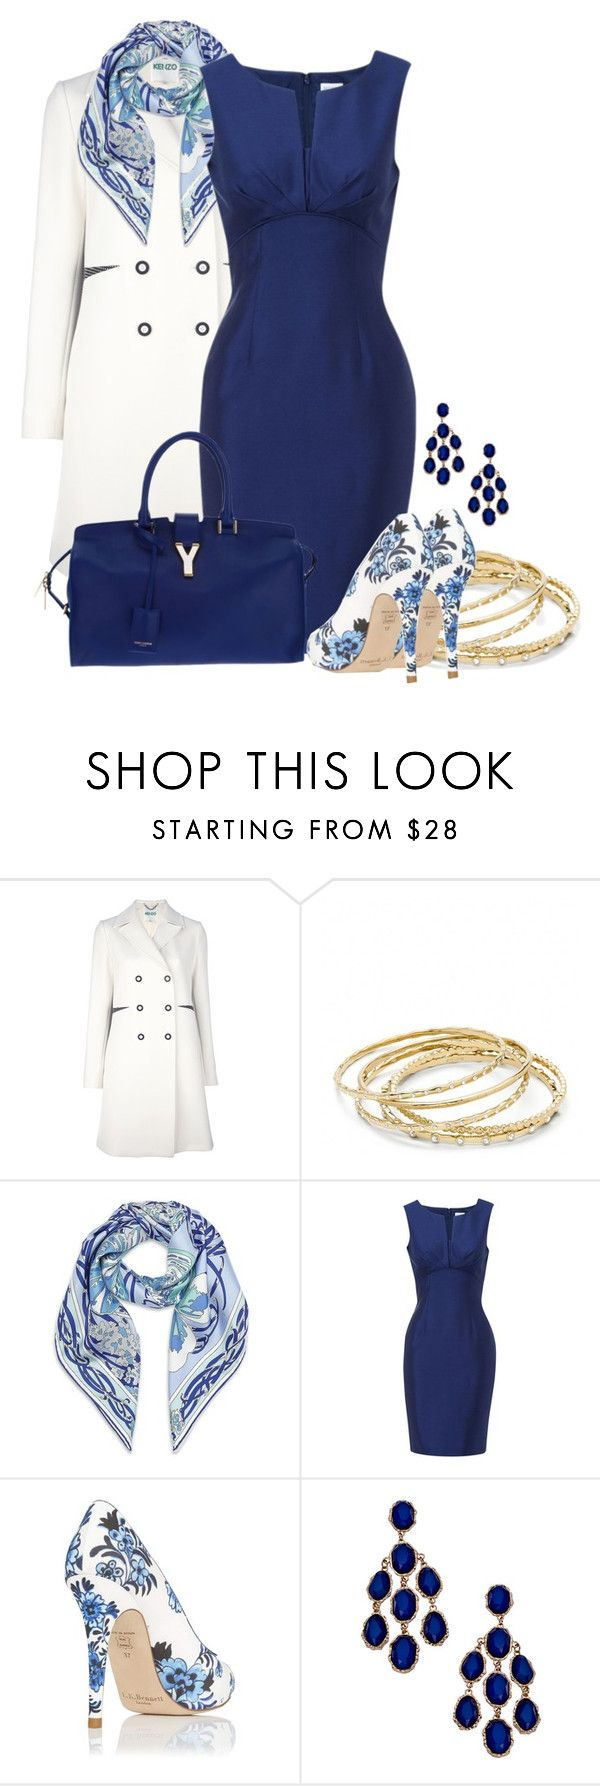 Love the dress by amo-iste on Polyvore featuring Hobbs, Kenzo, L.K.Bennett, Yves Saint Laurent, Coach, Blu Bijoux and Emilio Pucci